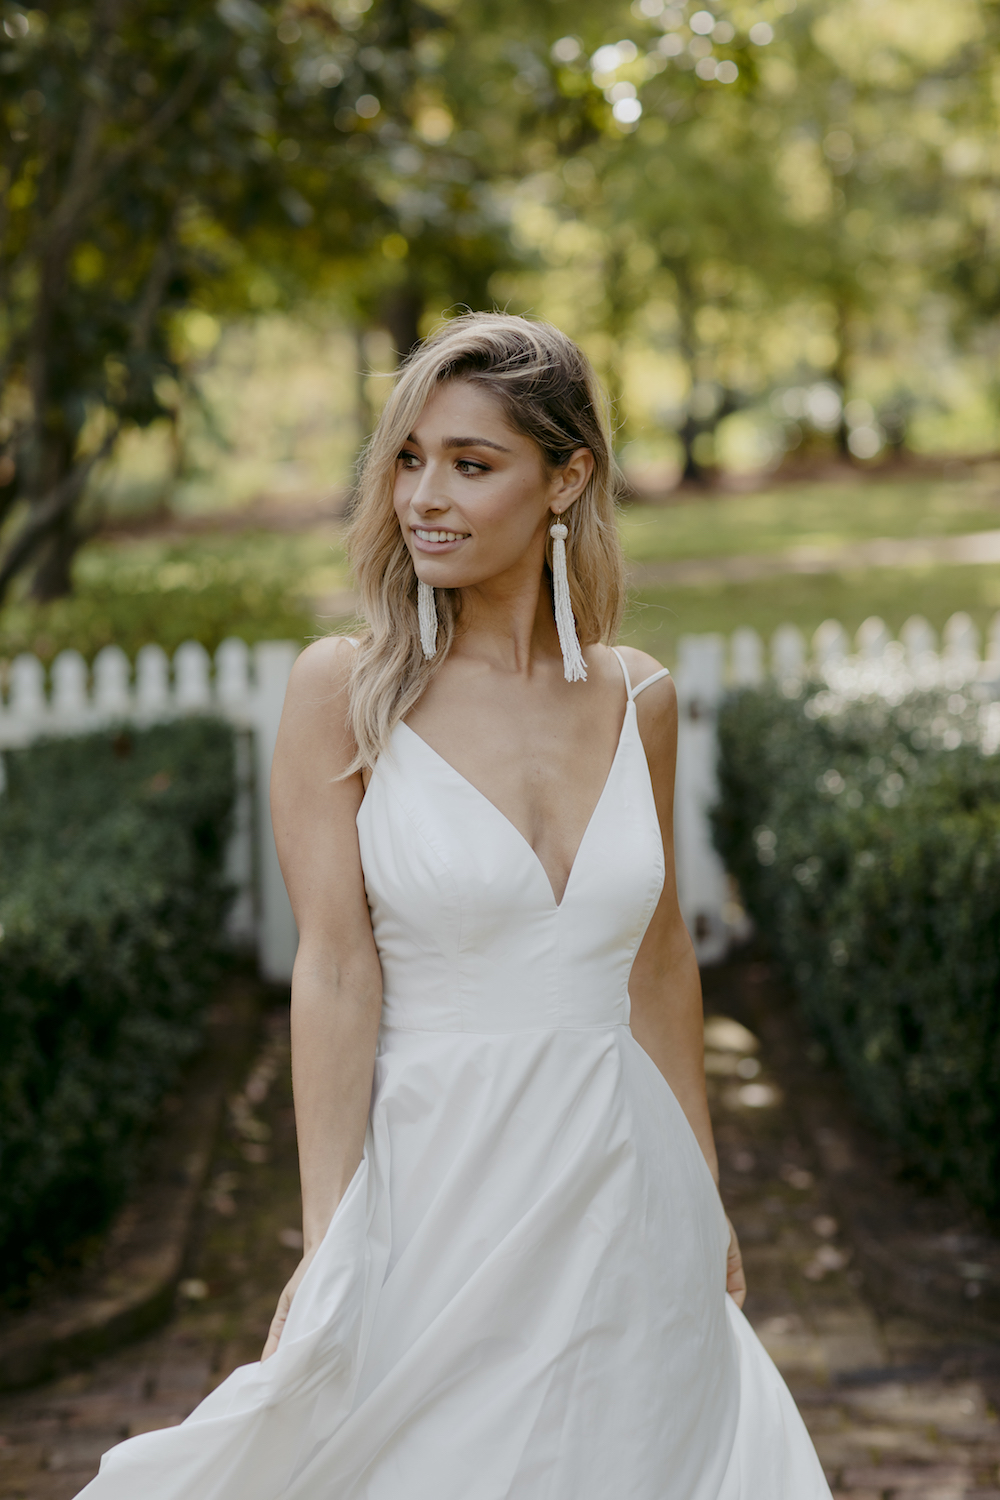 Duniway Wedding Dress by Kate McDonald with Creative Direction by Engaged Creative